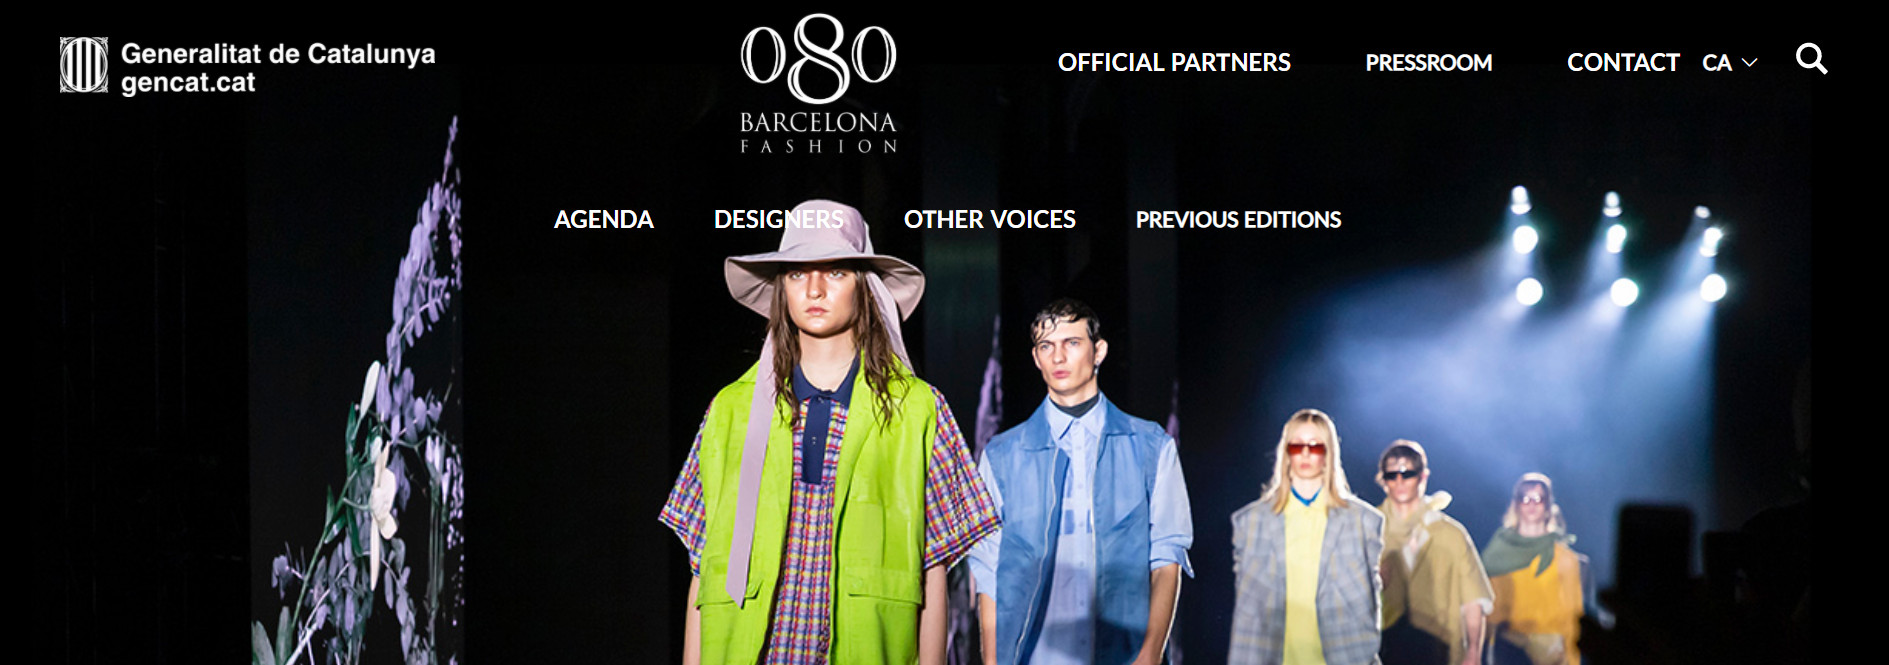 080 Barcelona Fashion, in digital format, focuses on projecting fashion to all audiences and reaching new audiences internationally